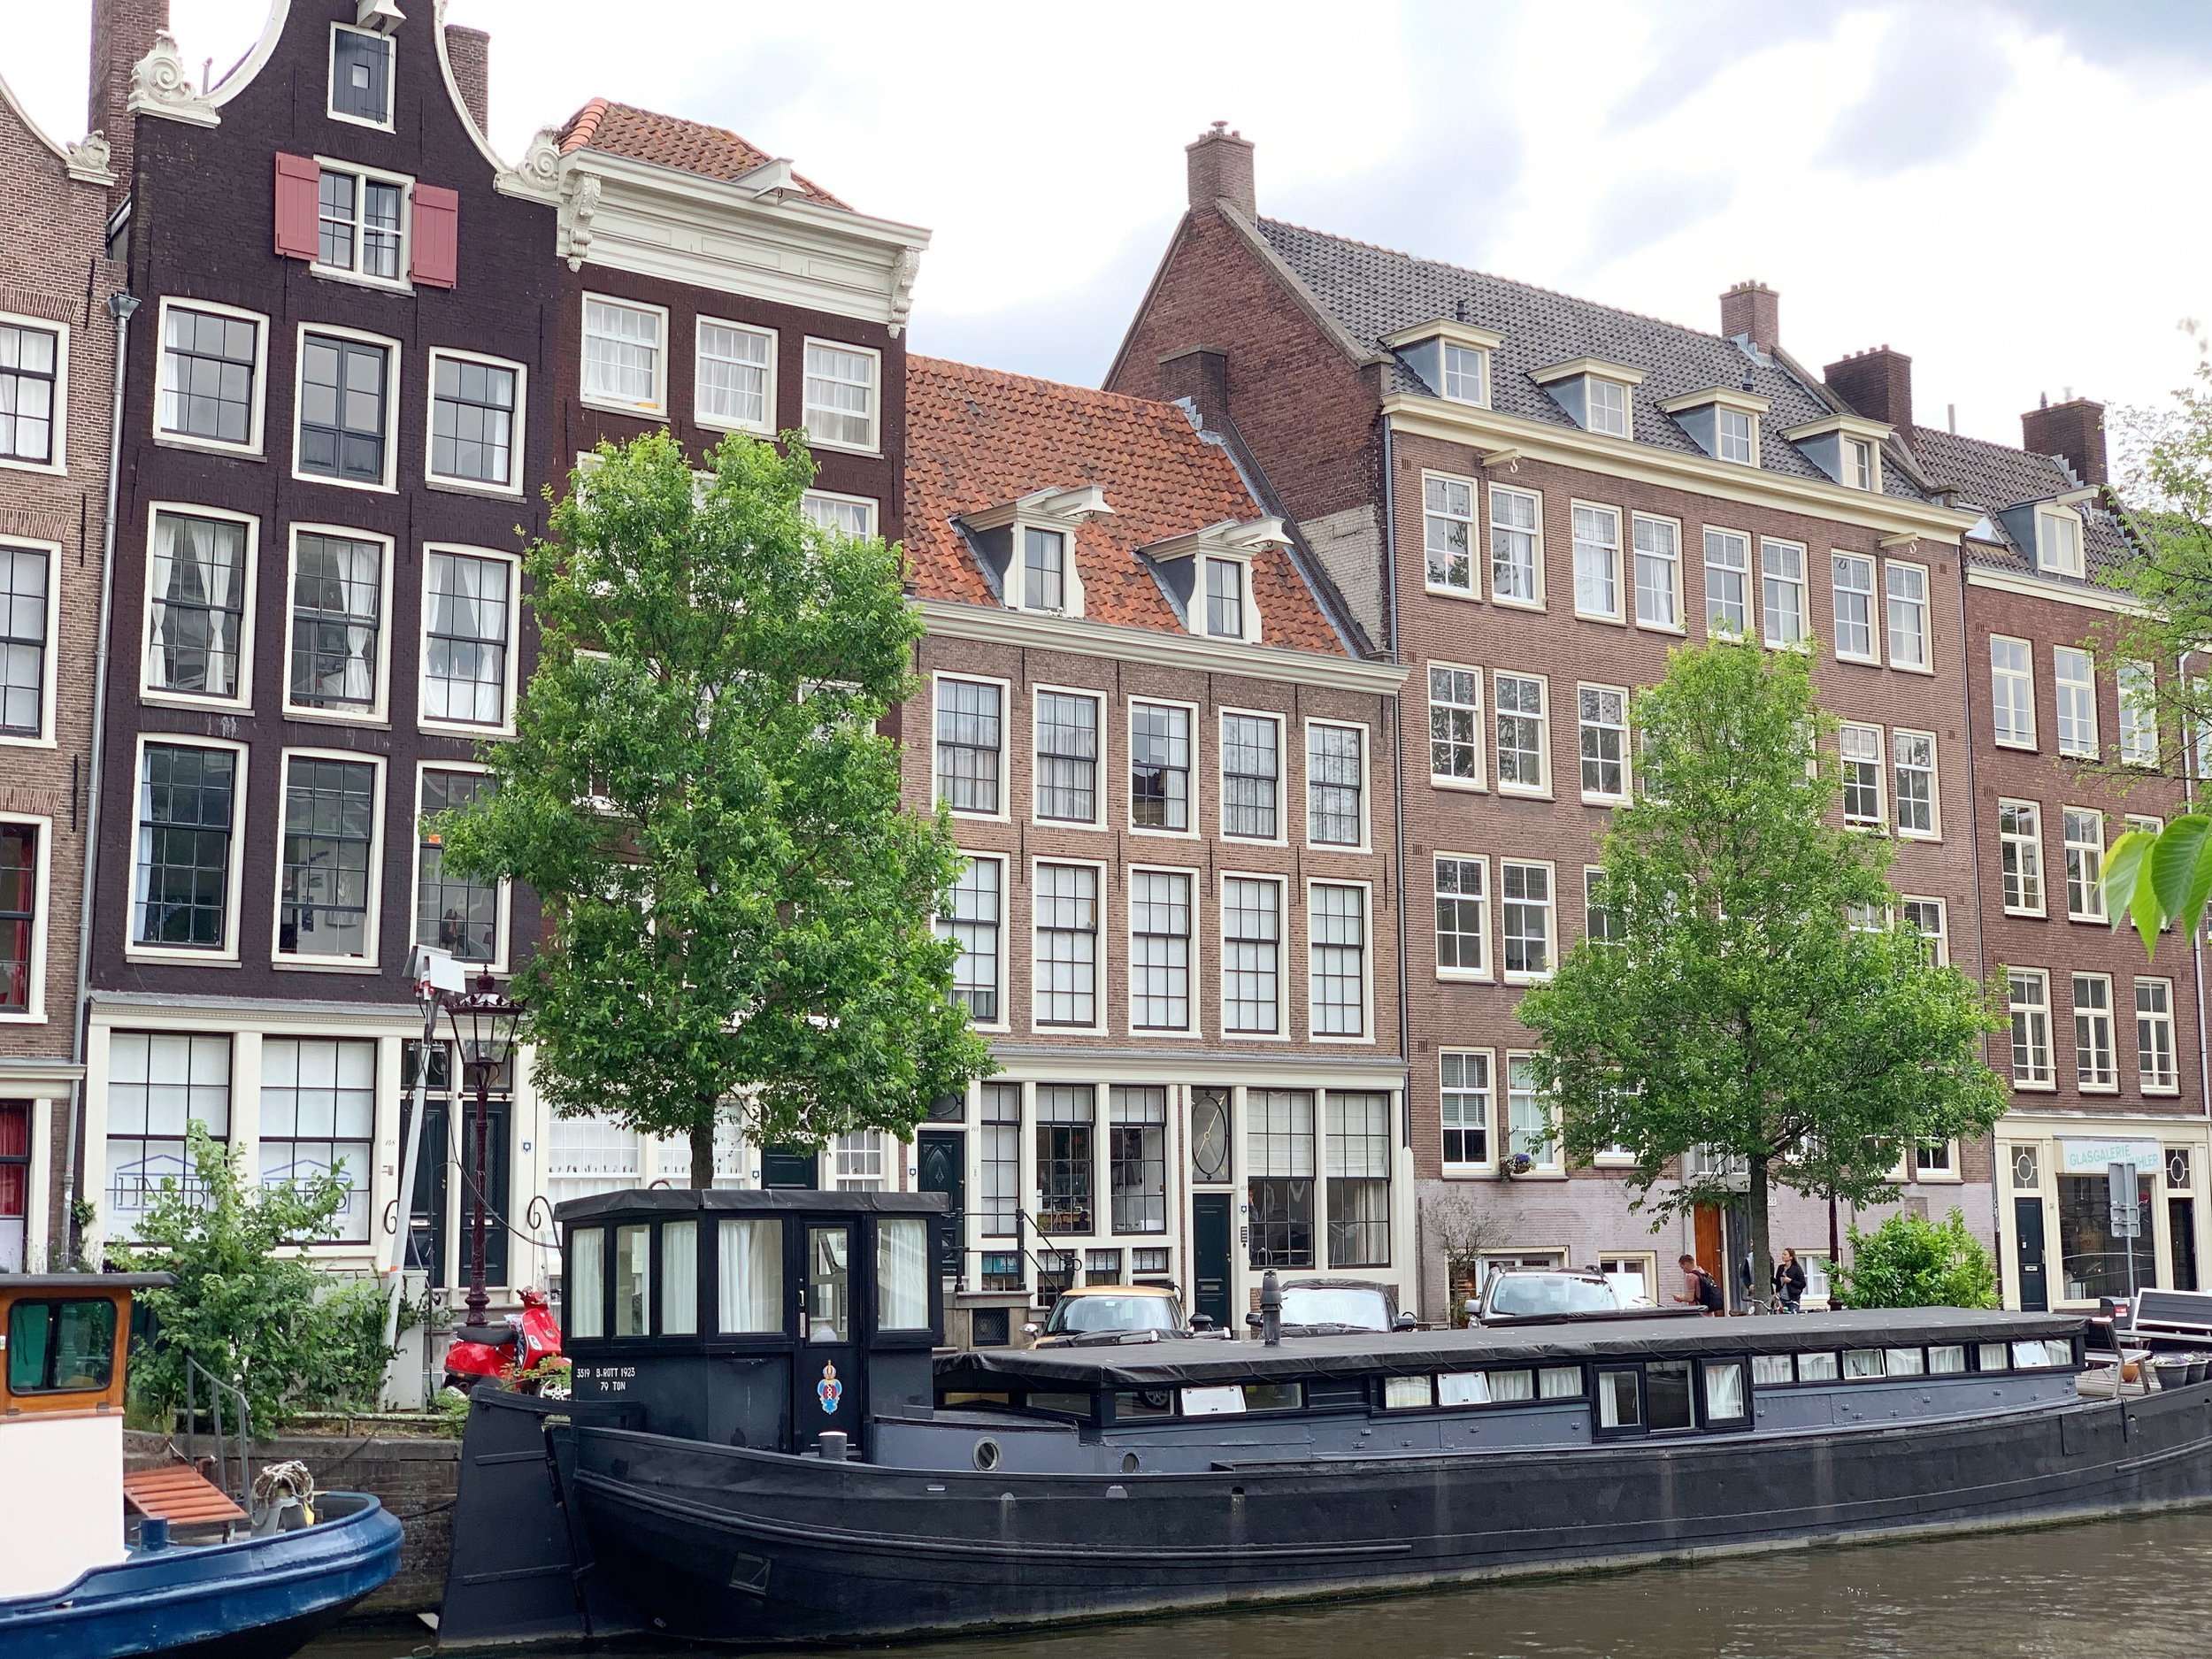 Amsterdam Canal Houses - Vanilla Rose Weddings Monthly Round Up